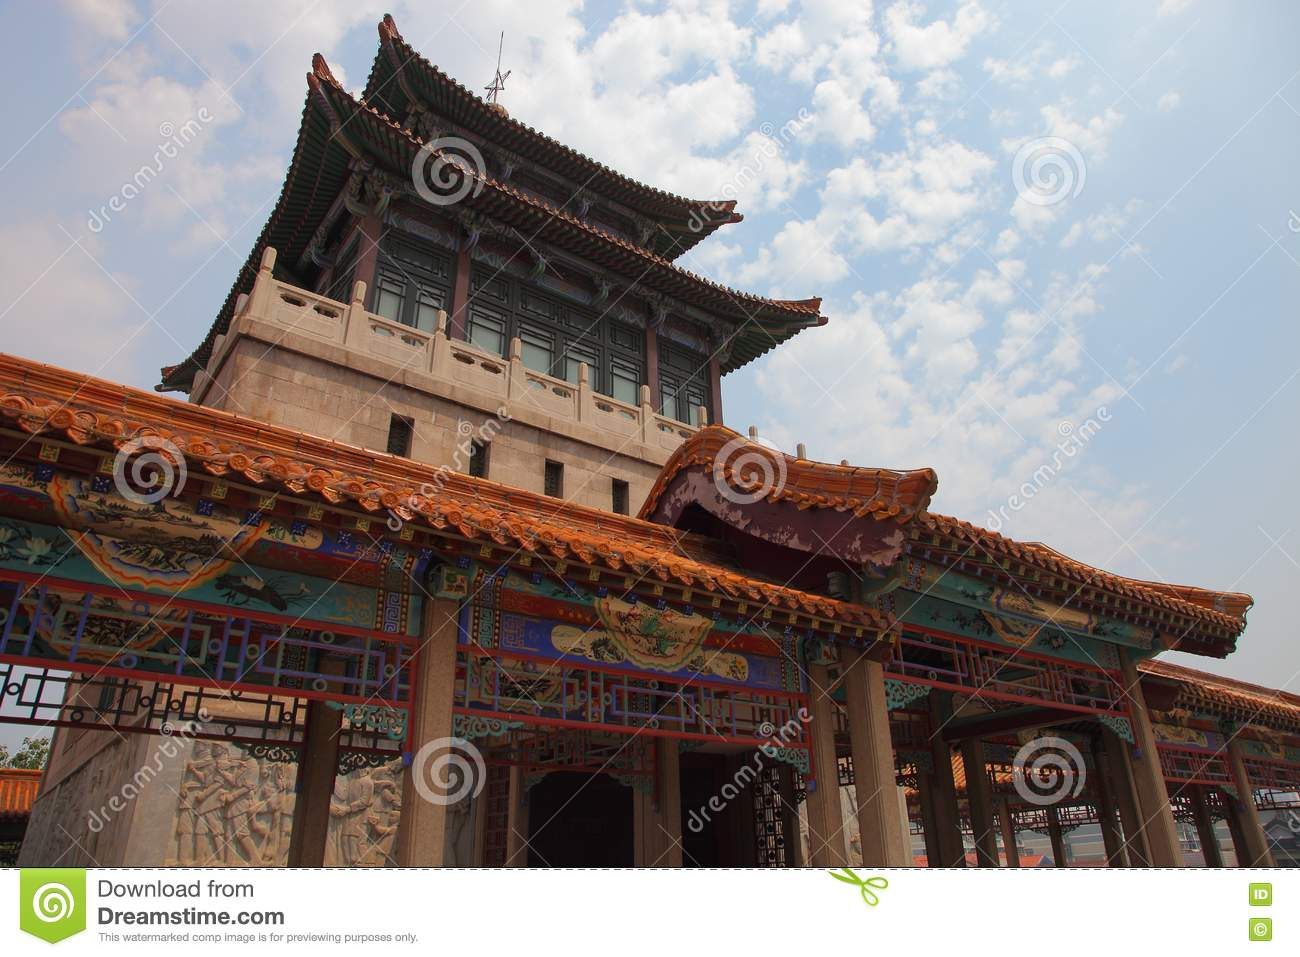 Architecture classique chinoise images stock image 18492844 for Architecture chinoise